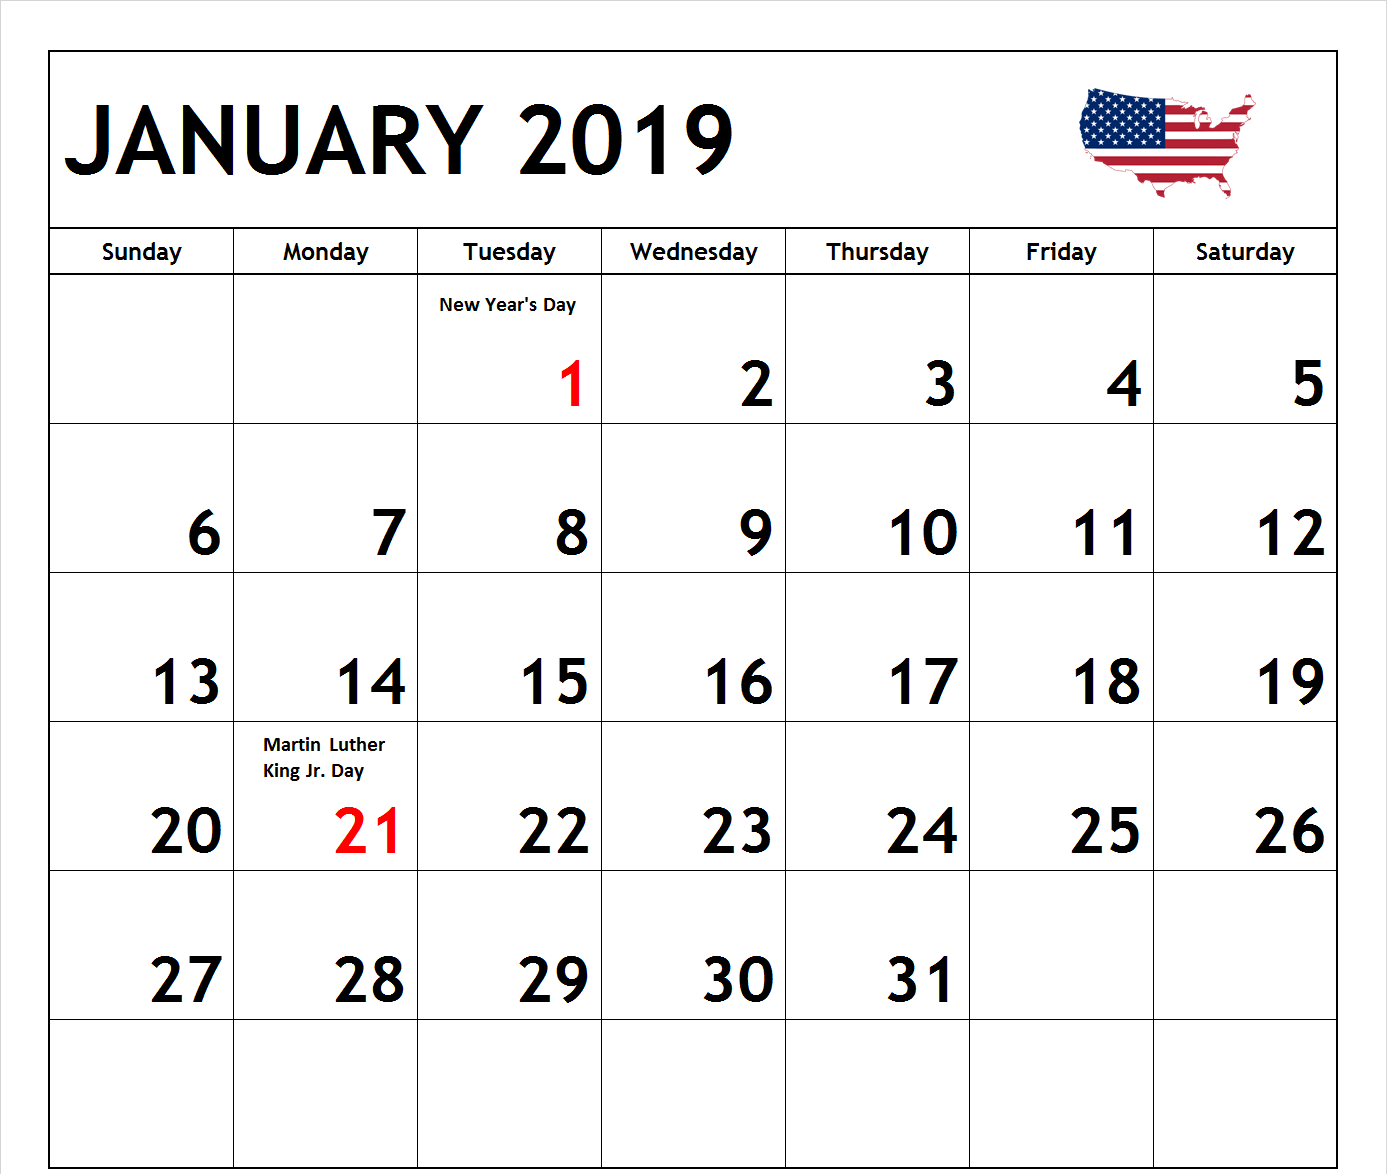 January 2019 Calendar US Holidays